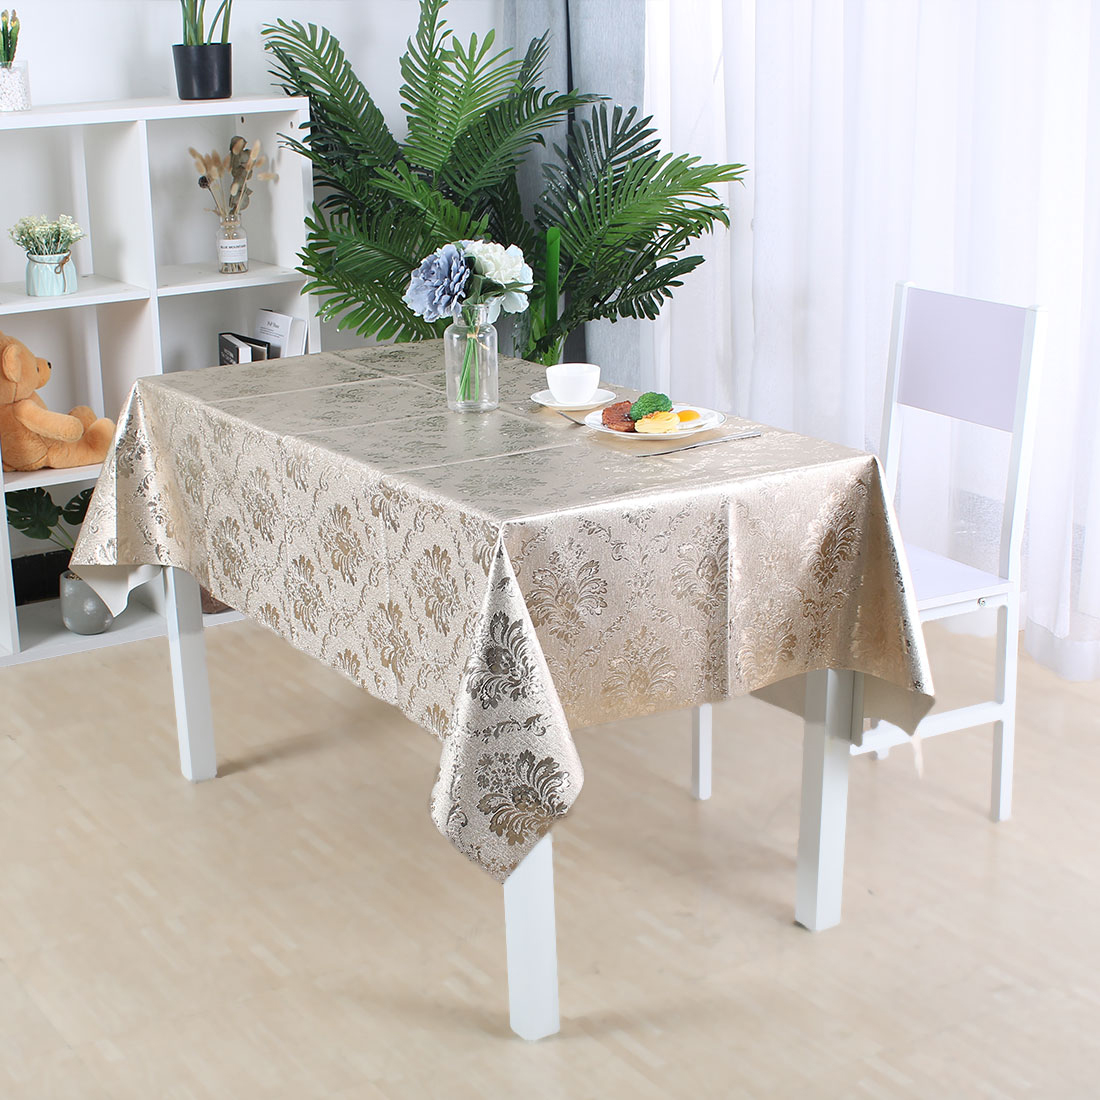 """Tablecloth PVC Vinyl Oil Stain Resistant Party Camping Table Cloth 54""""x54"""", #1 - image 2 de 7"""